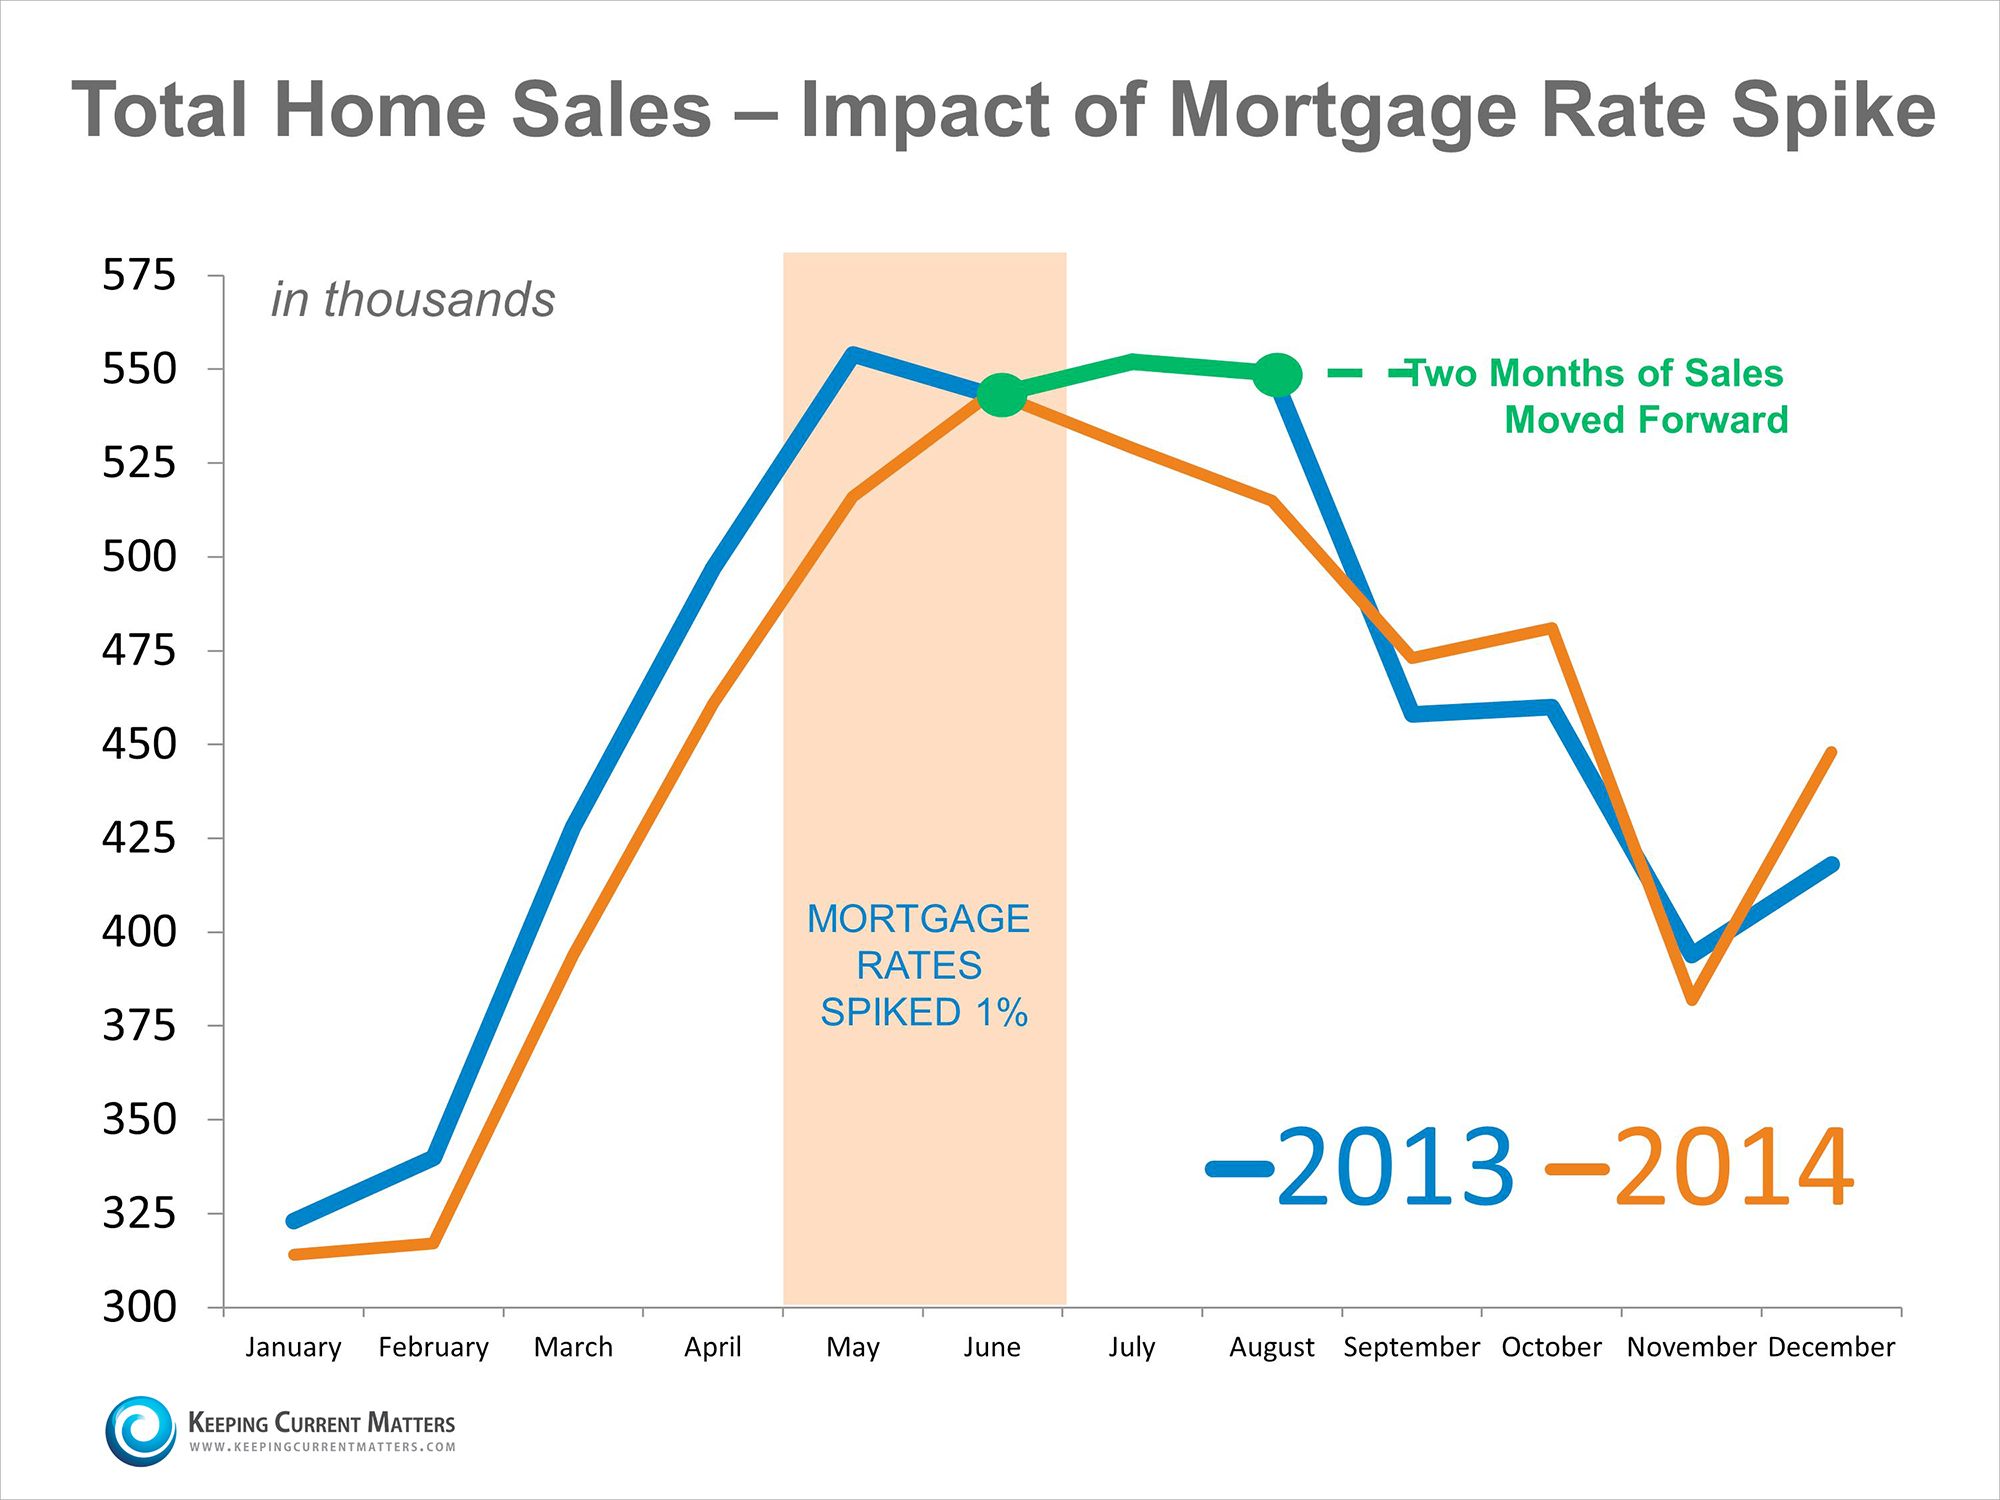 Home Sales & Impact of Mortgage Rate Spike   Keeping Current Matters